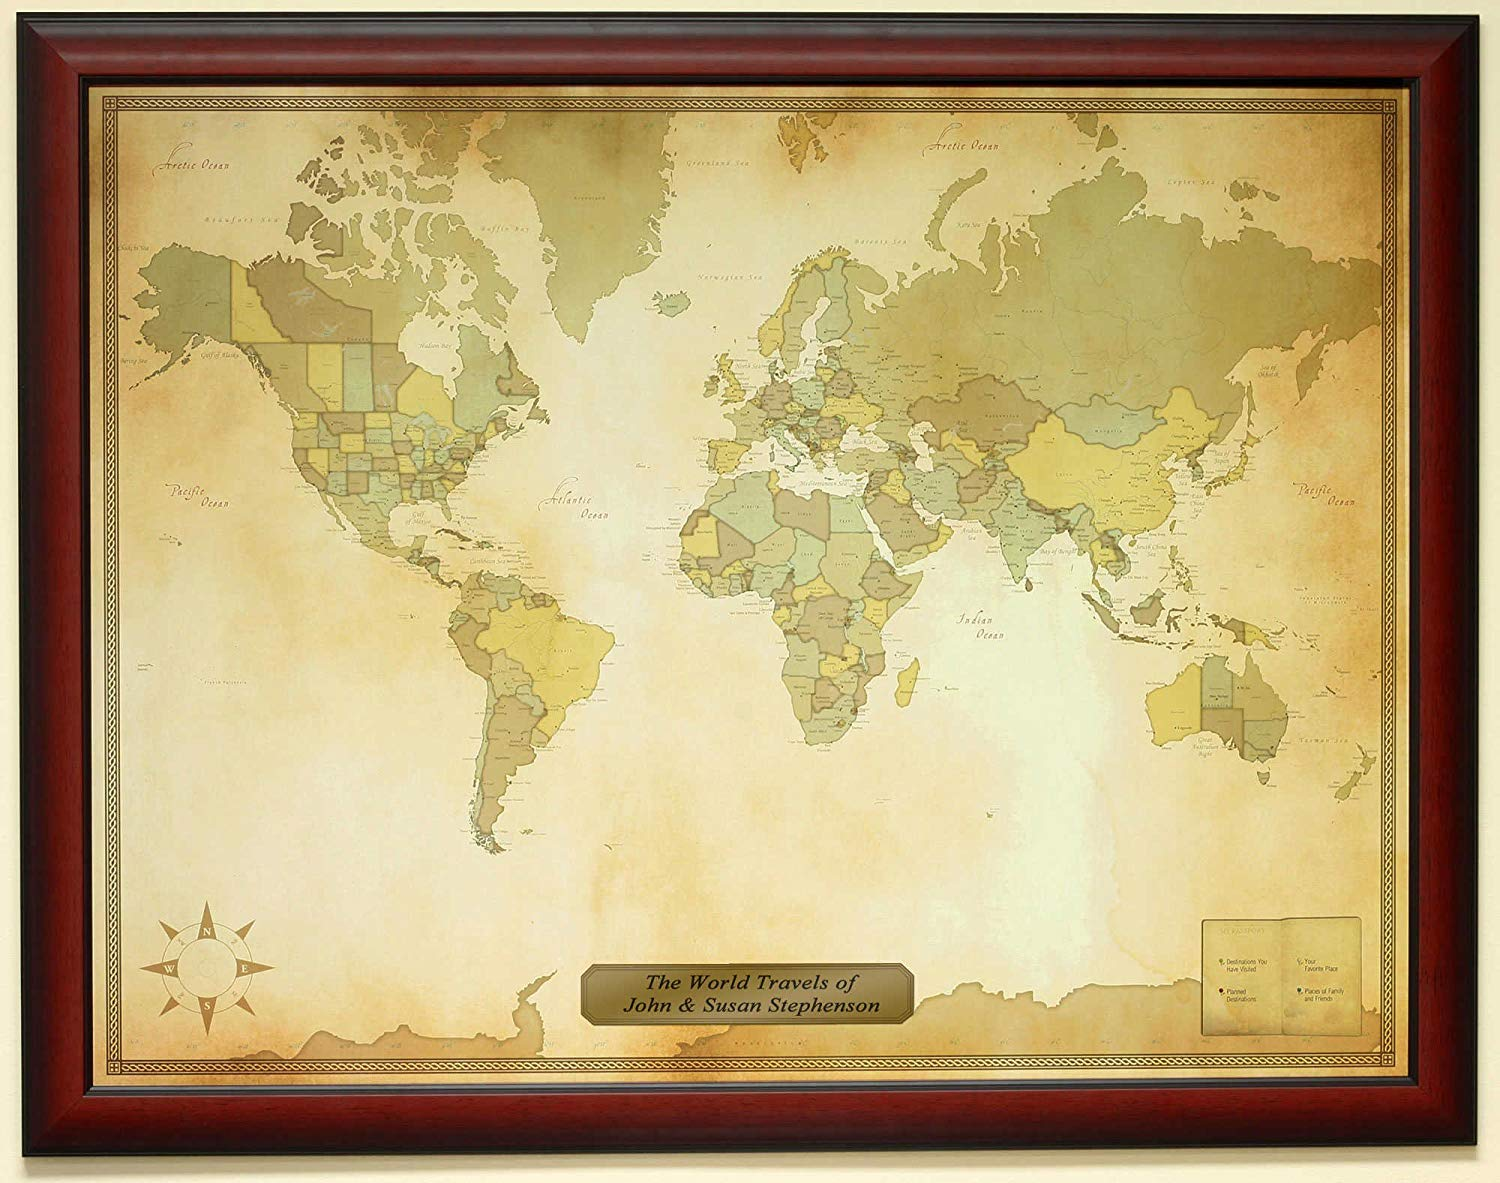 Personalized Push Pin Vintage World Travel Map with Custom Brushed Gold Plaque